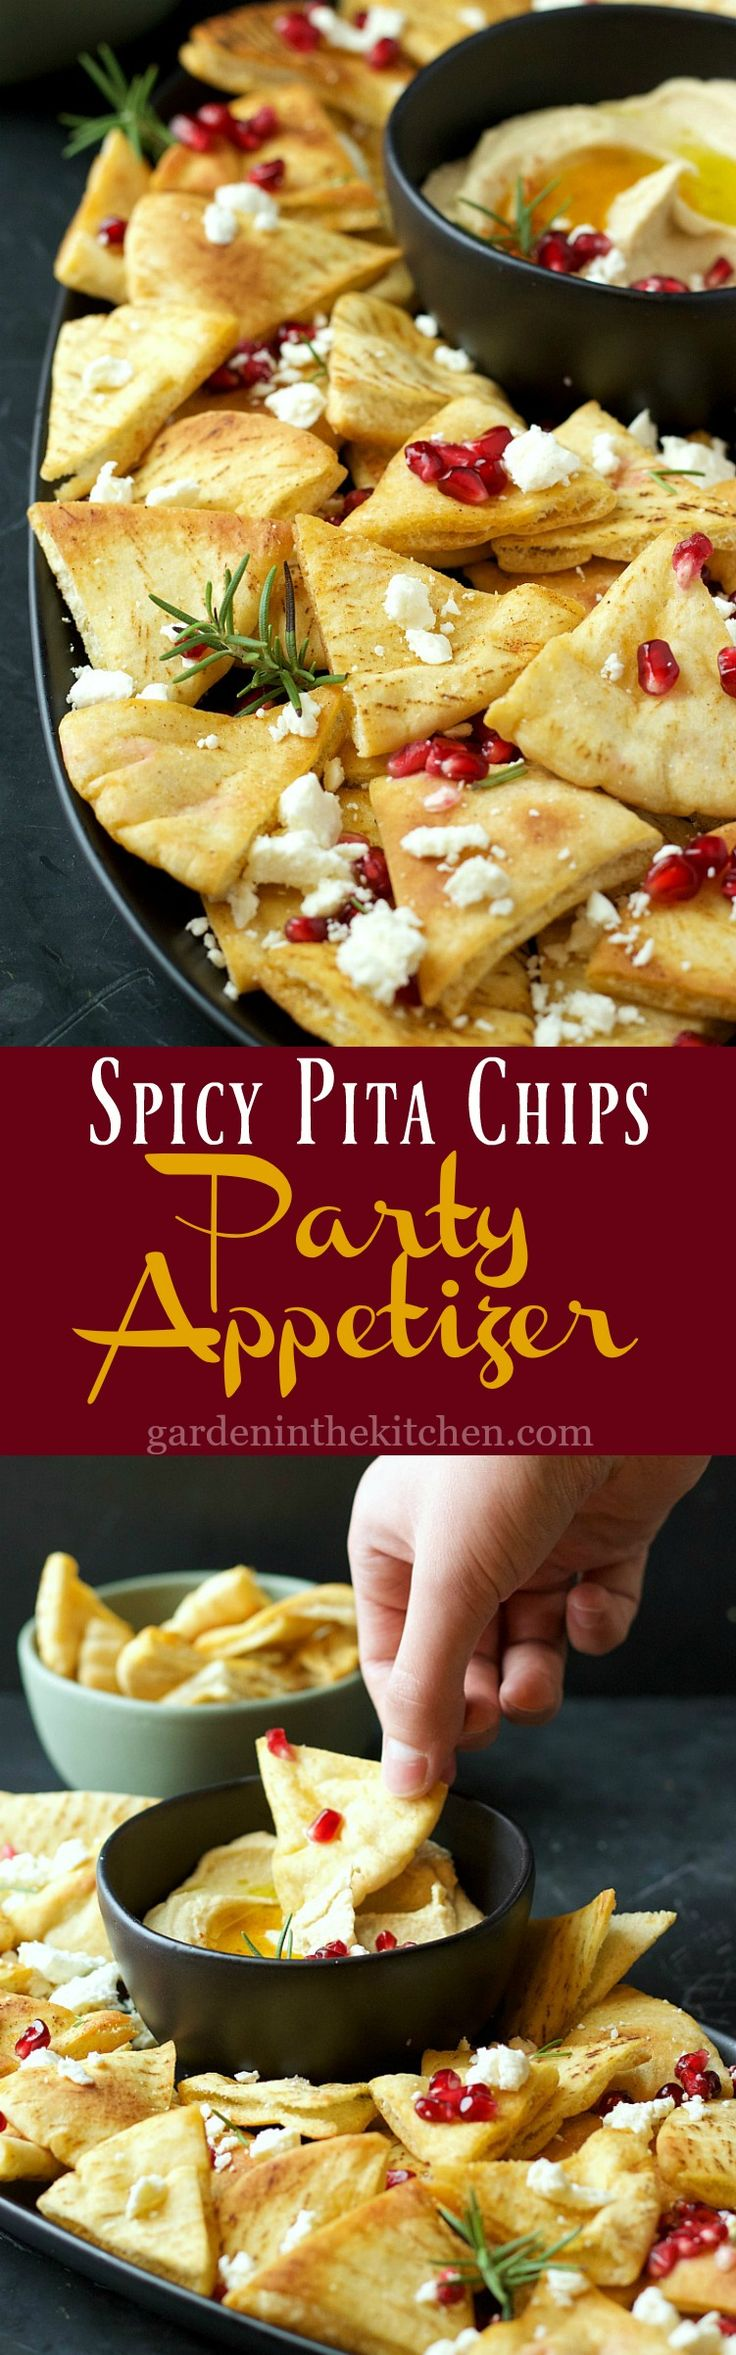 Spicy Pita Chips Party Appetizer | Garden in the Kitchen #partyfood #appetizer #pitachips #holidayappetizer